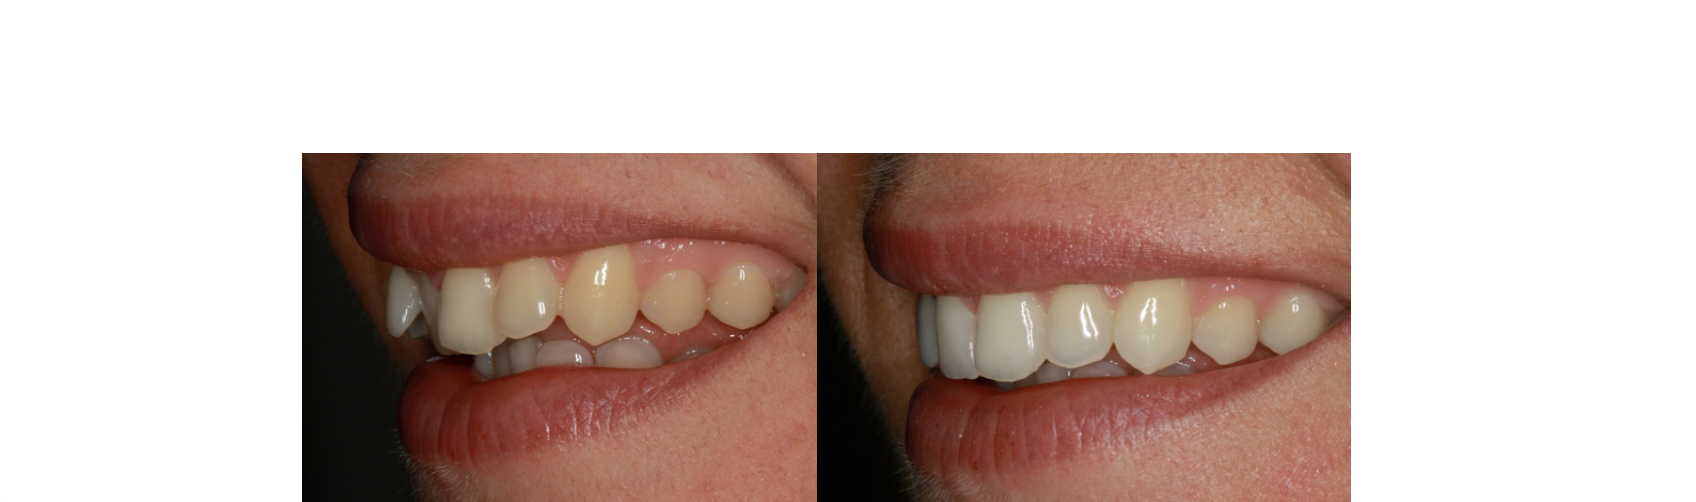 Inman-before-after